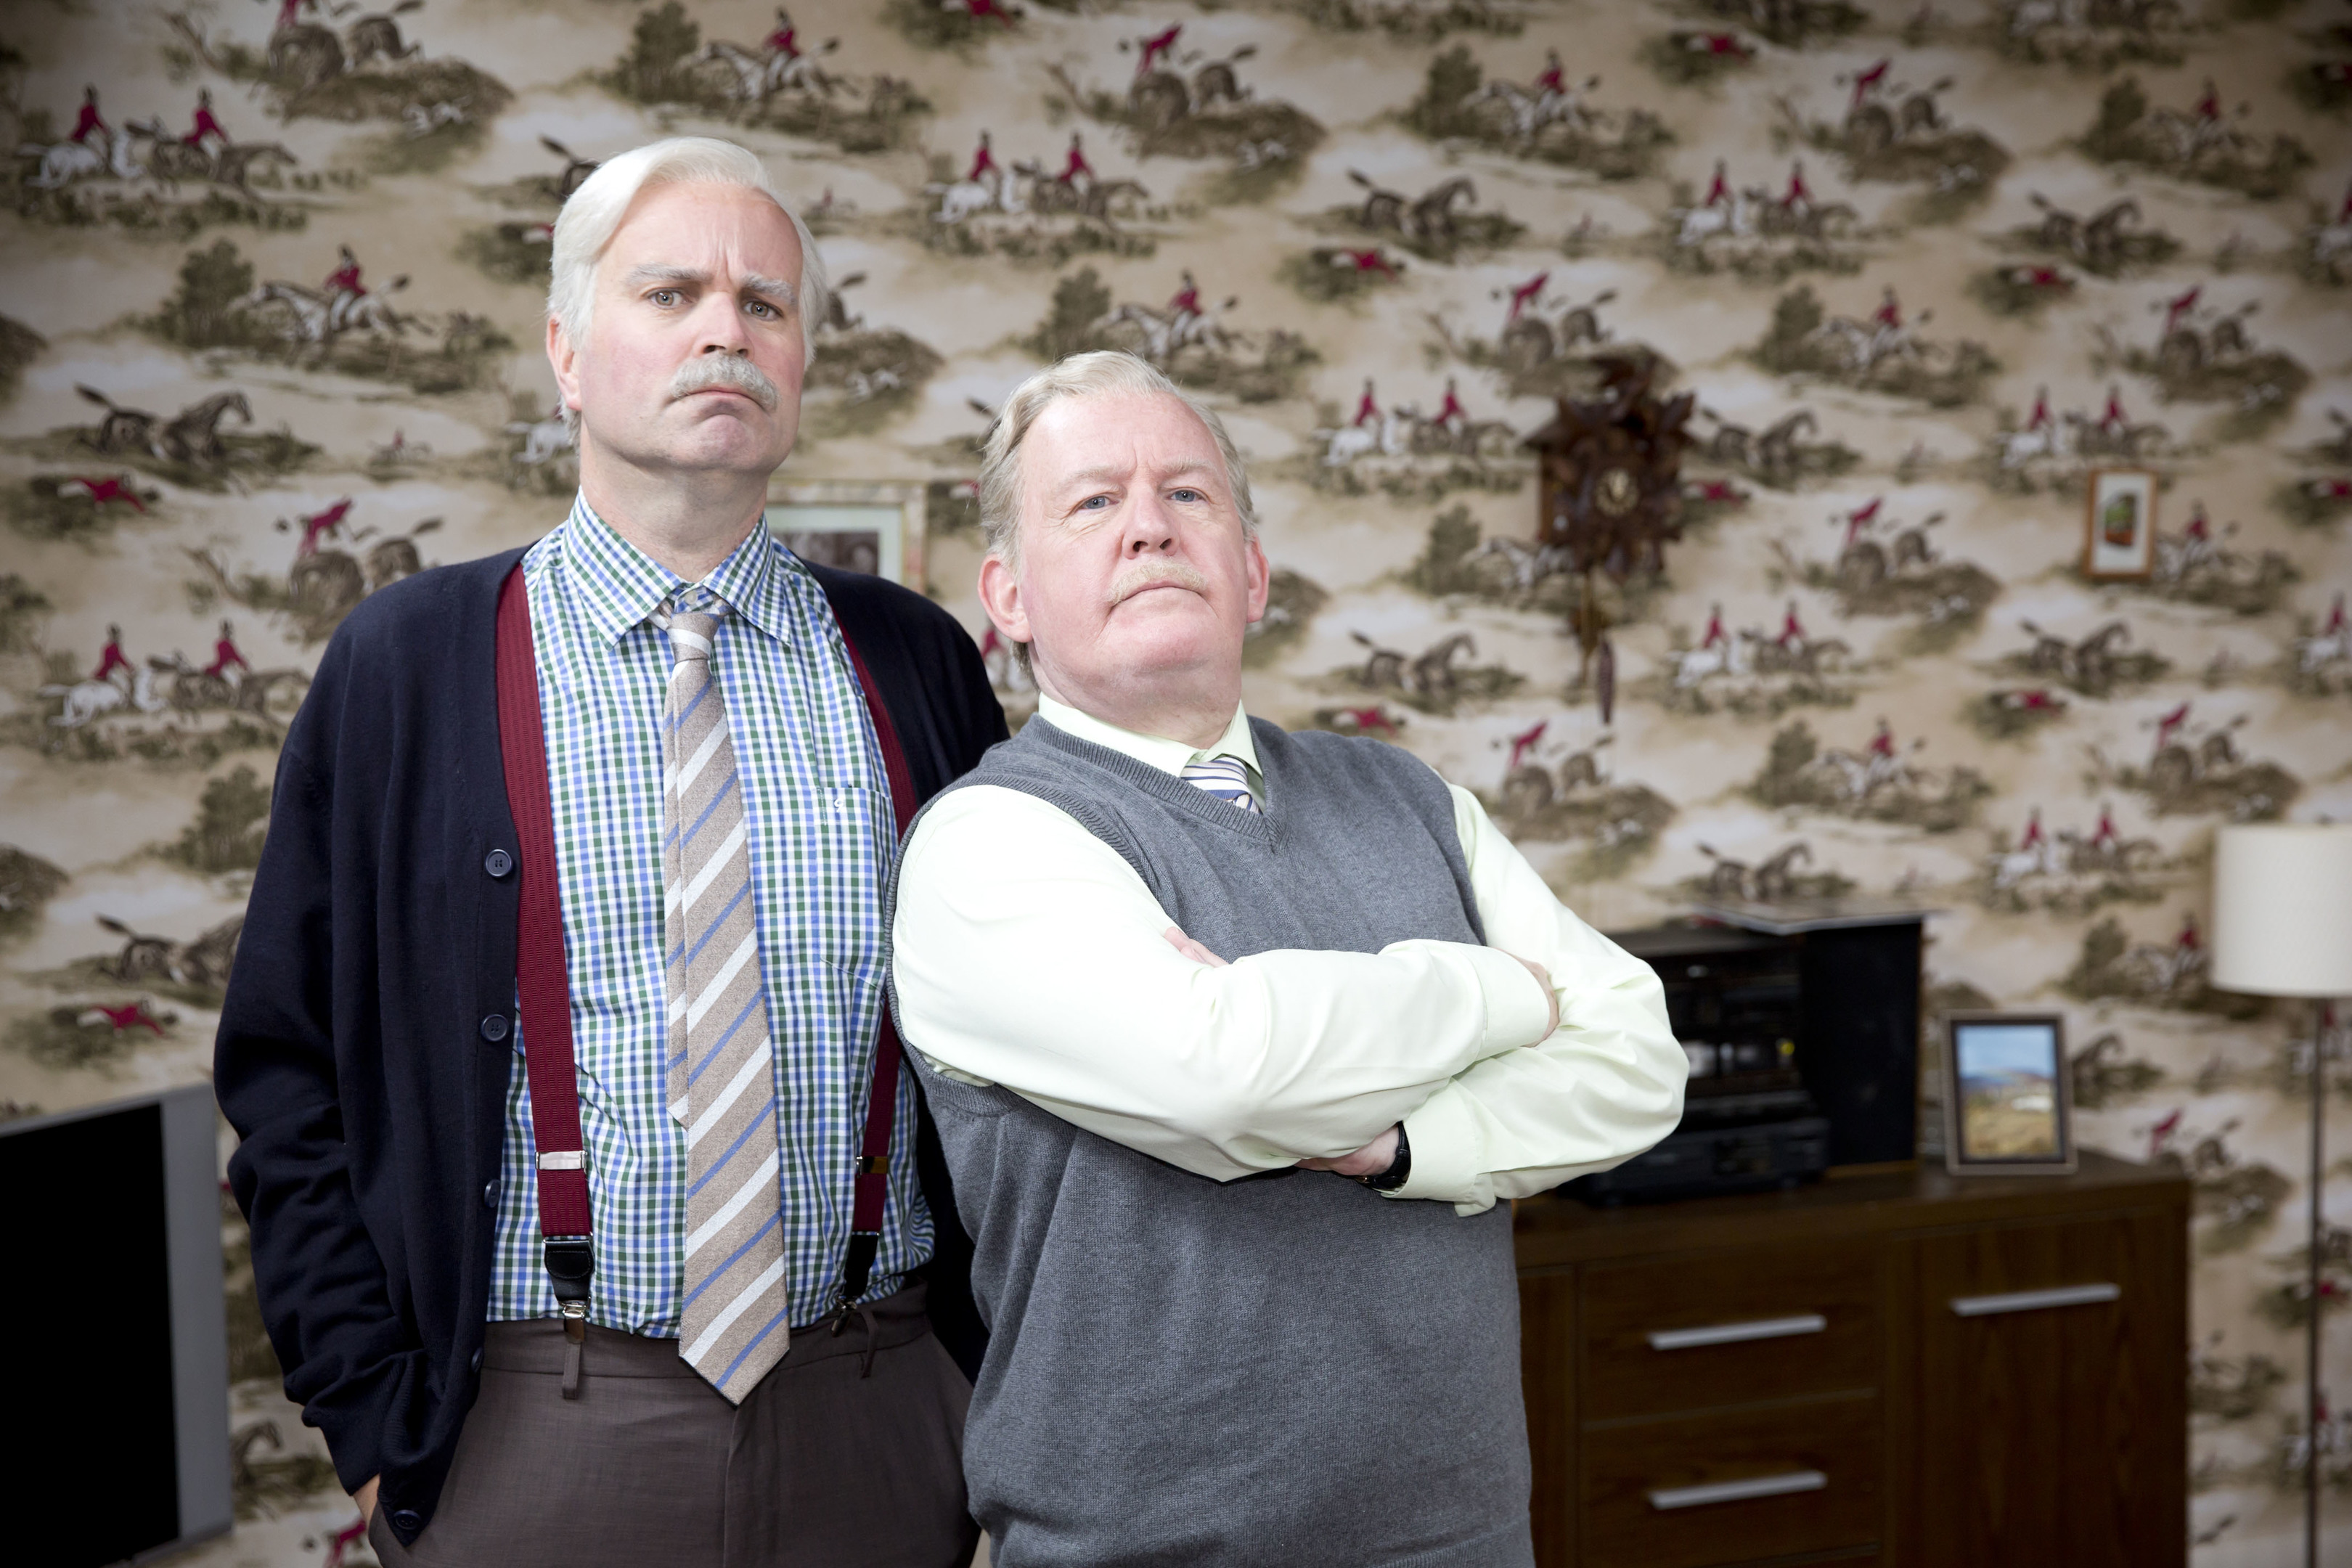 Greg Hemphill and Ford Kiernan as Jack and Victor (BBC Scotland)